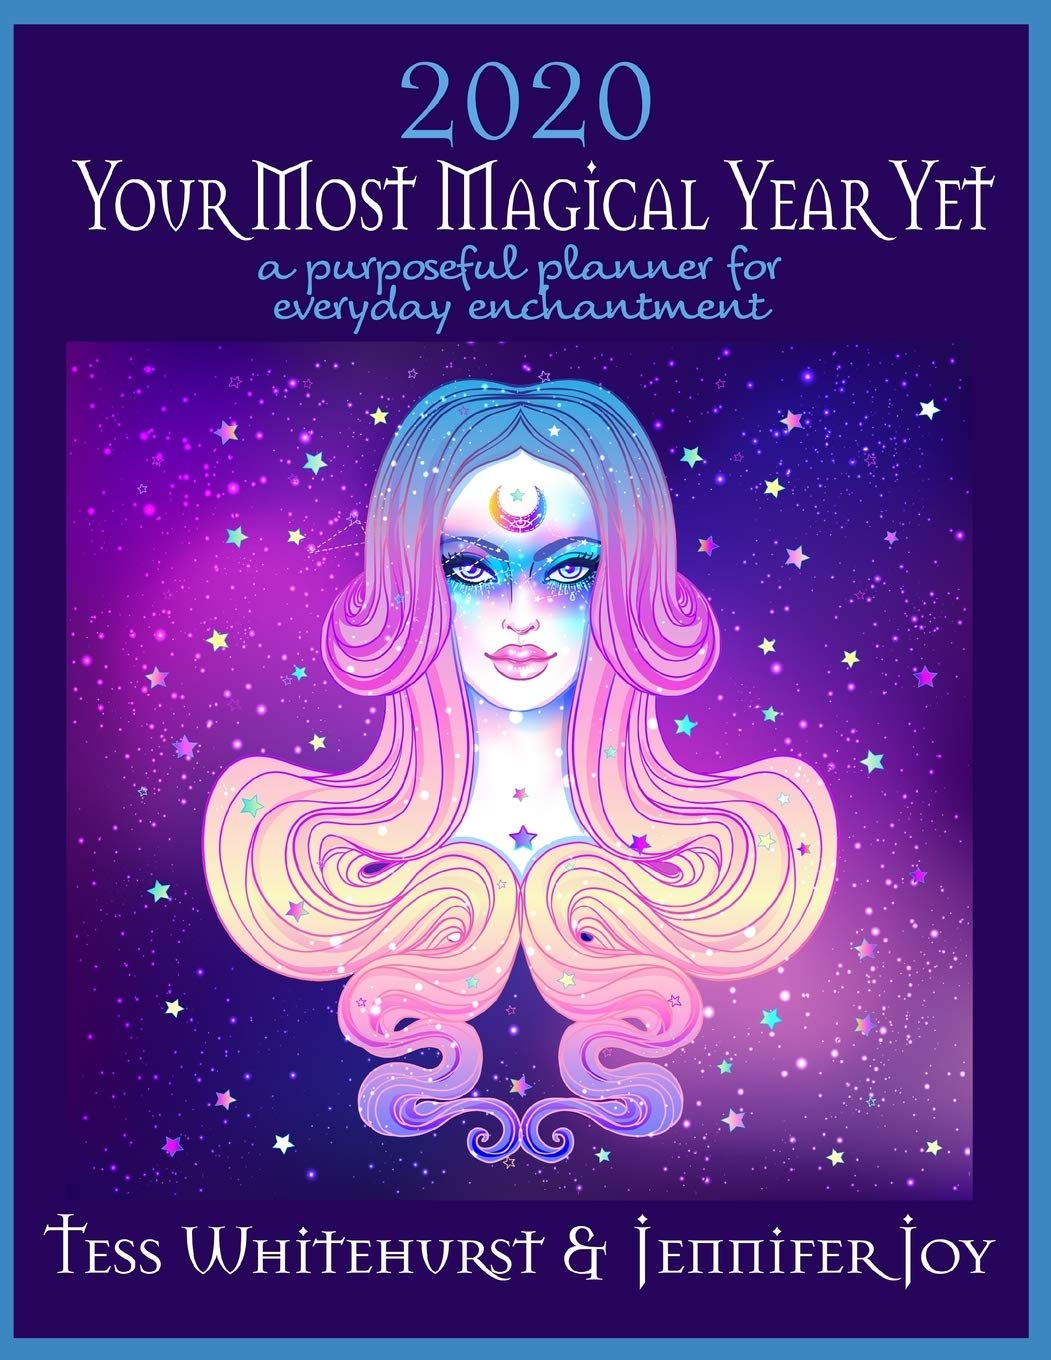 Amazon com: 2020: Your Most Magical Year Yet!: A Purposeful